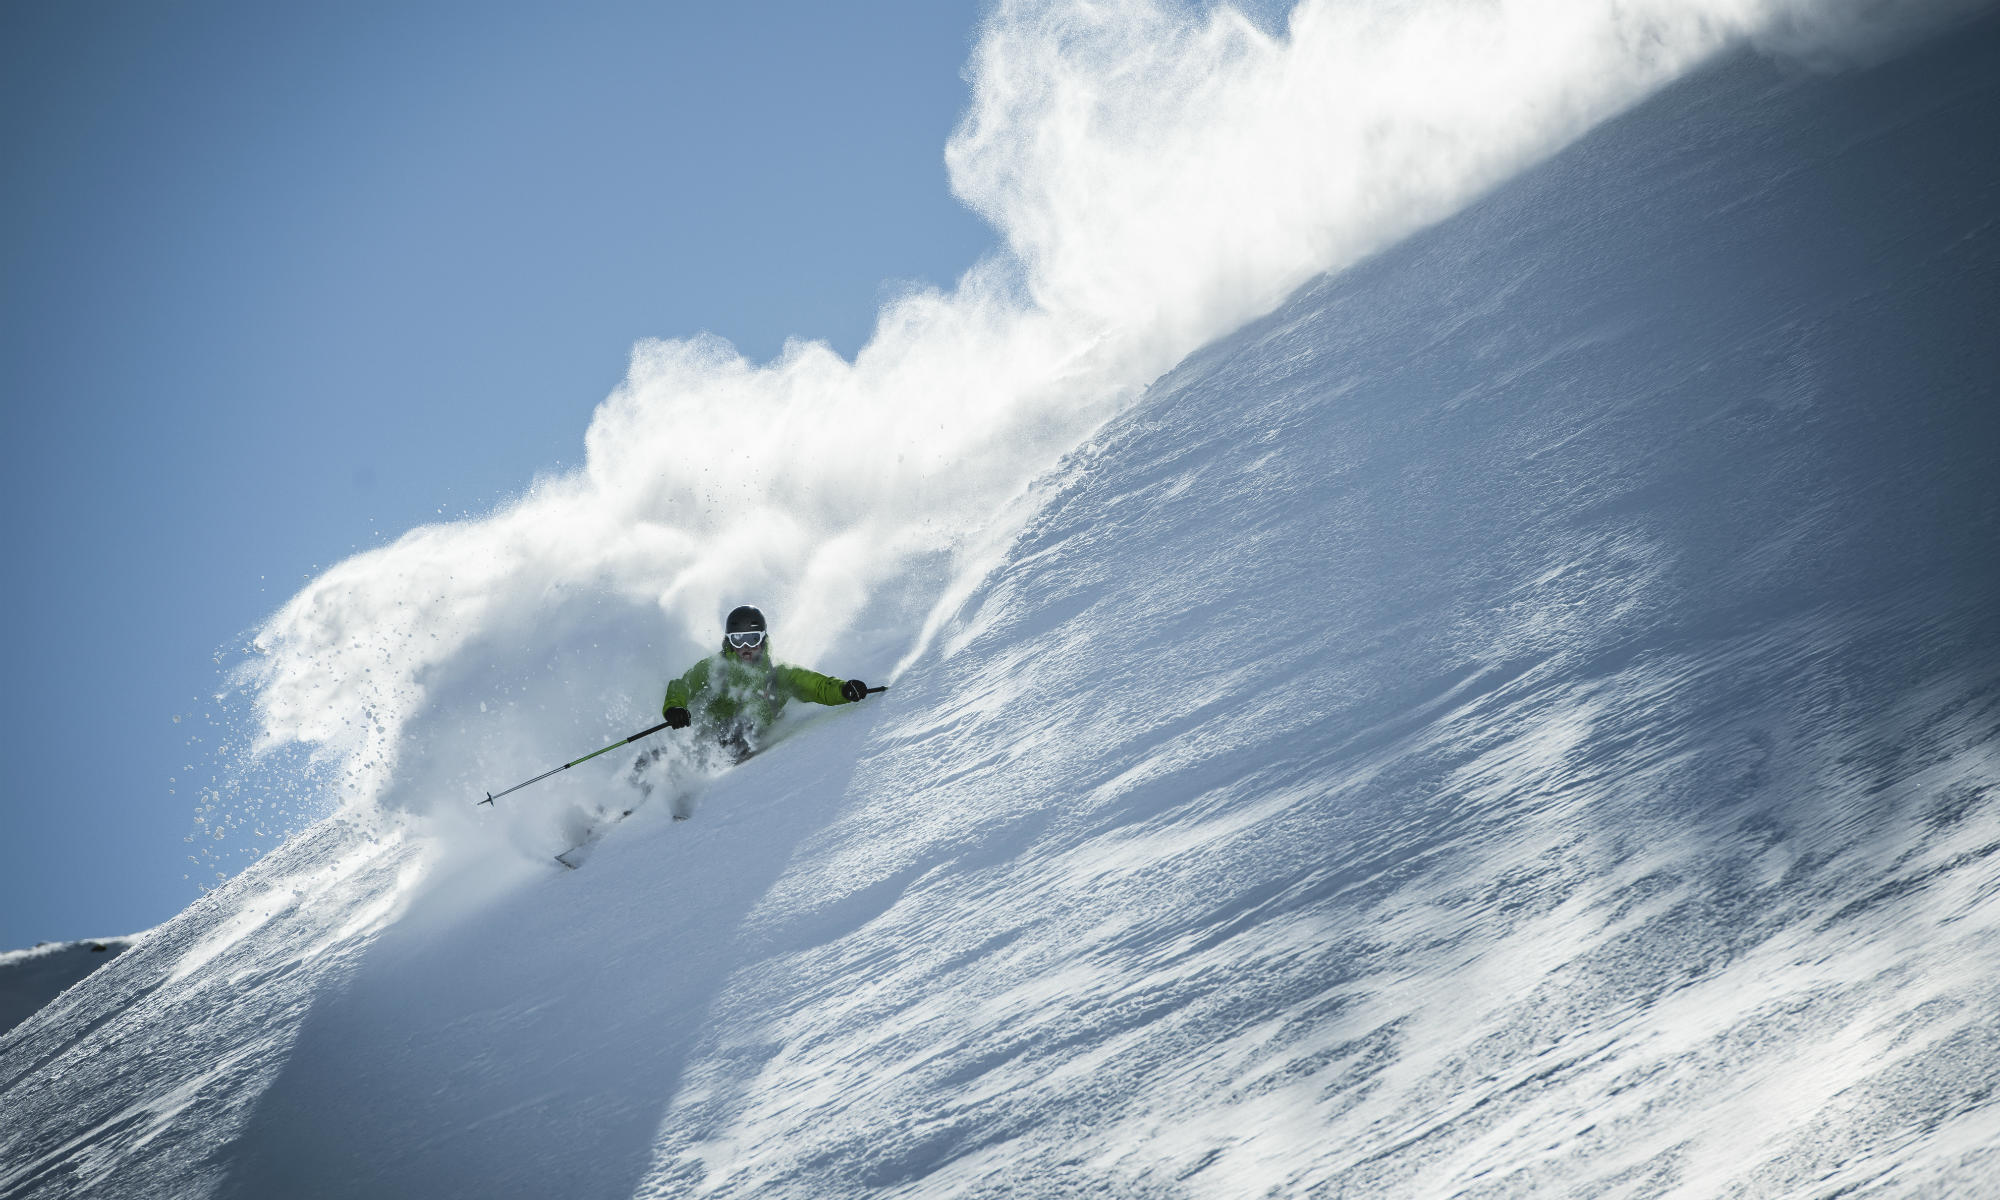 A freeride skier is skiing in deep powder snow.